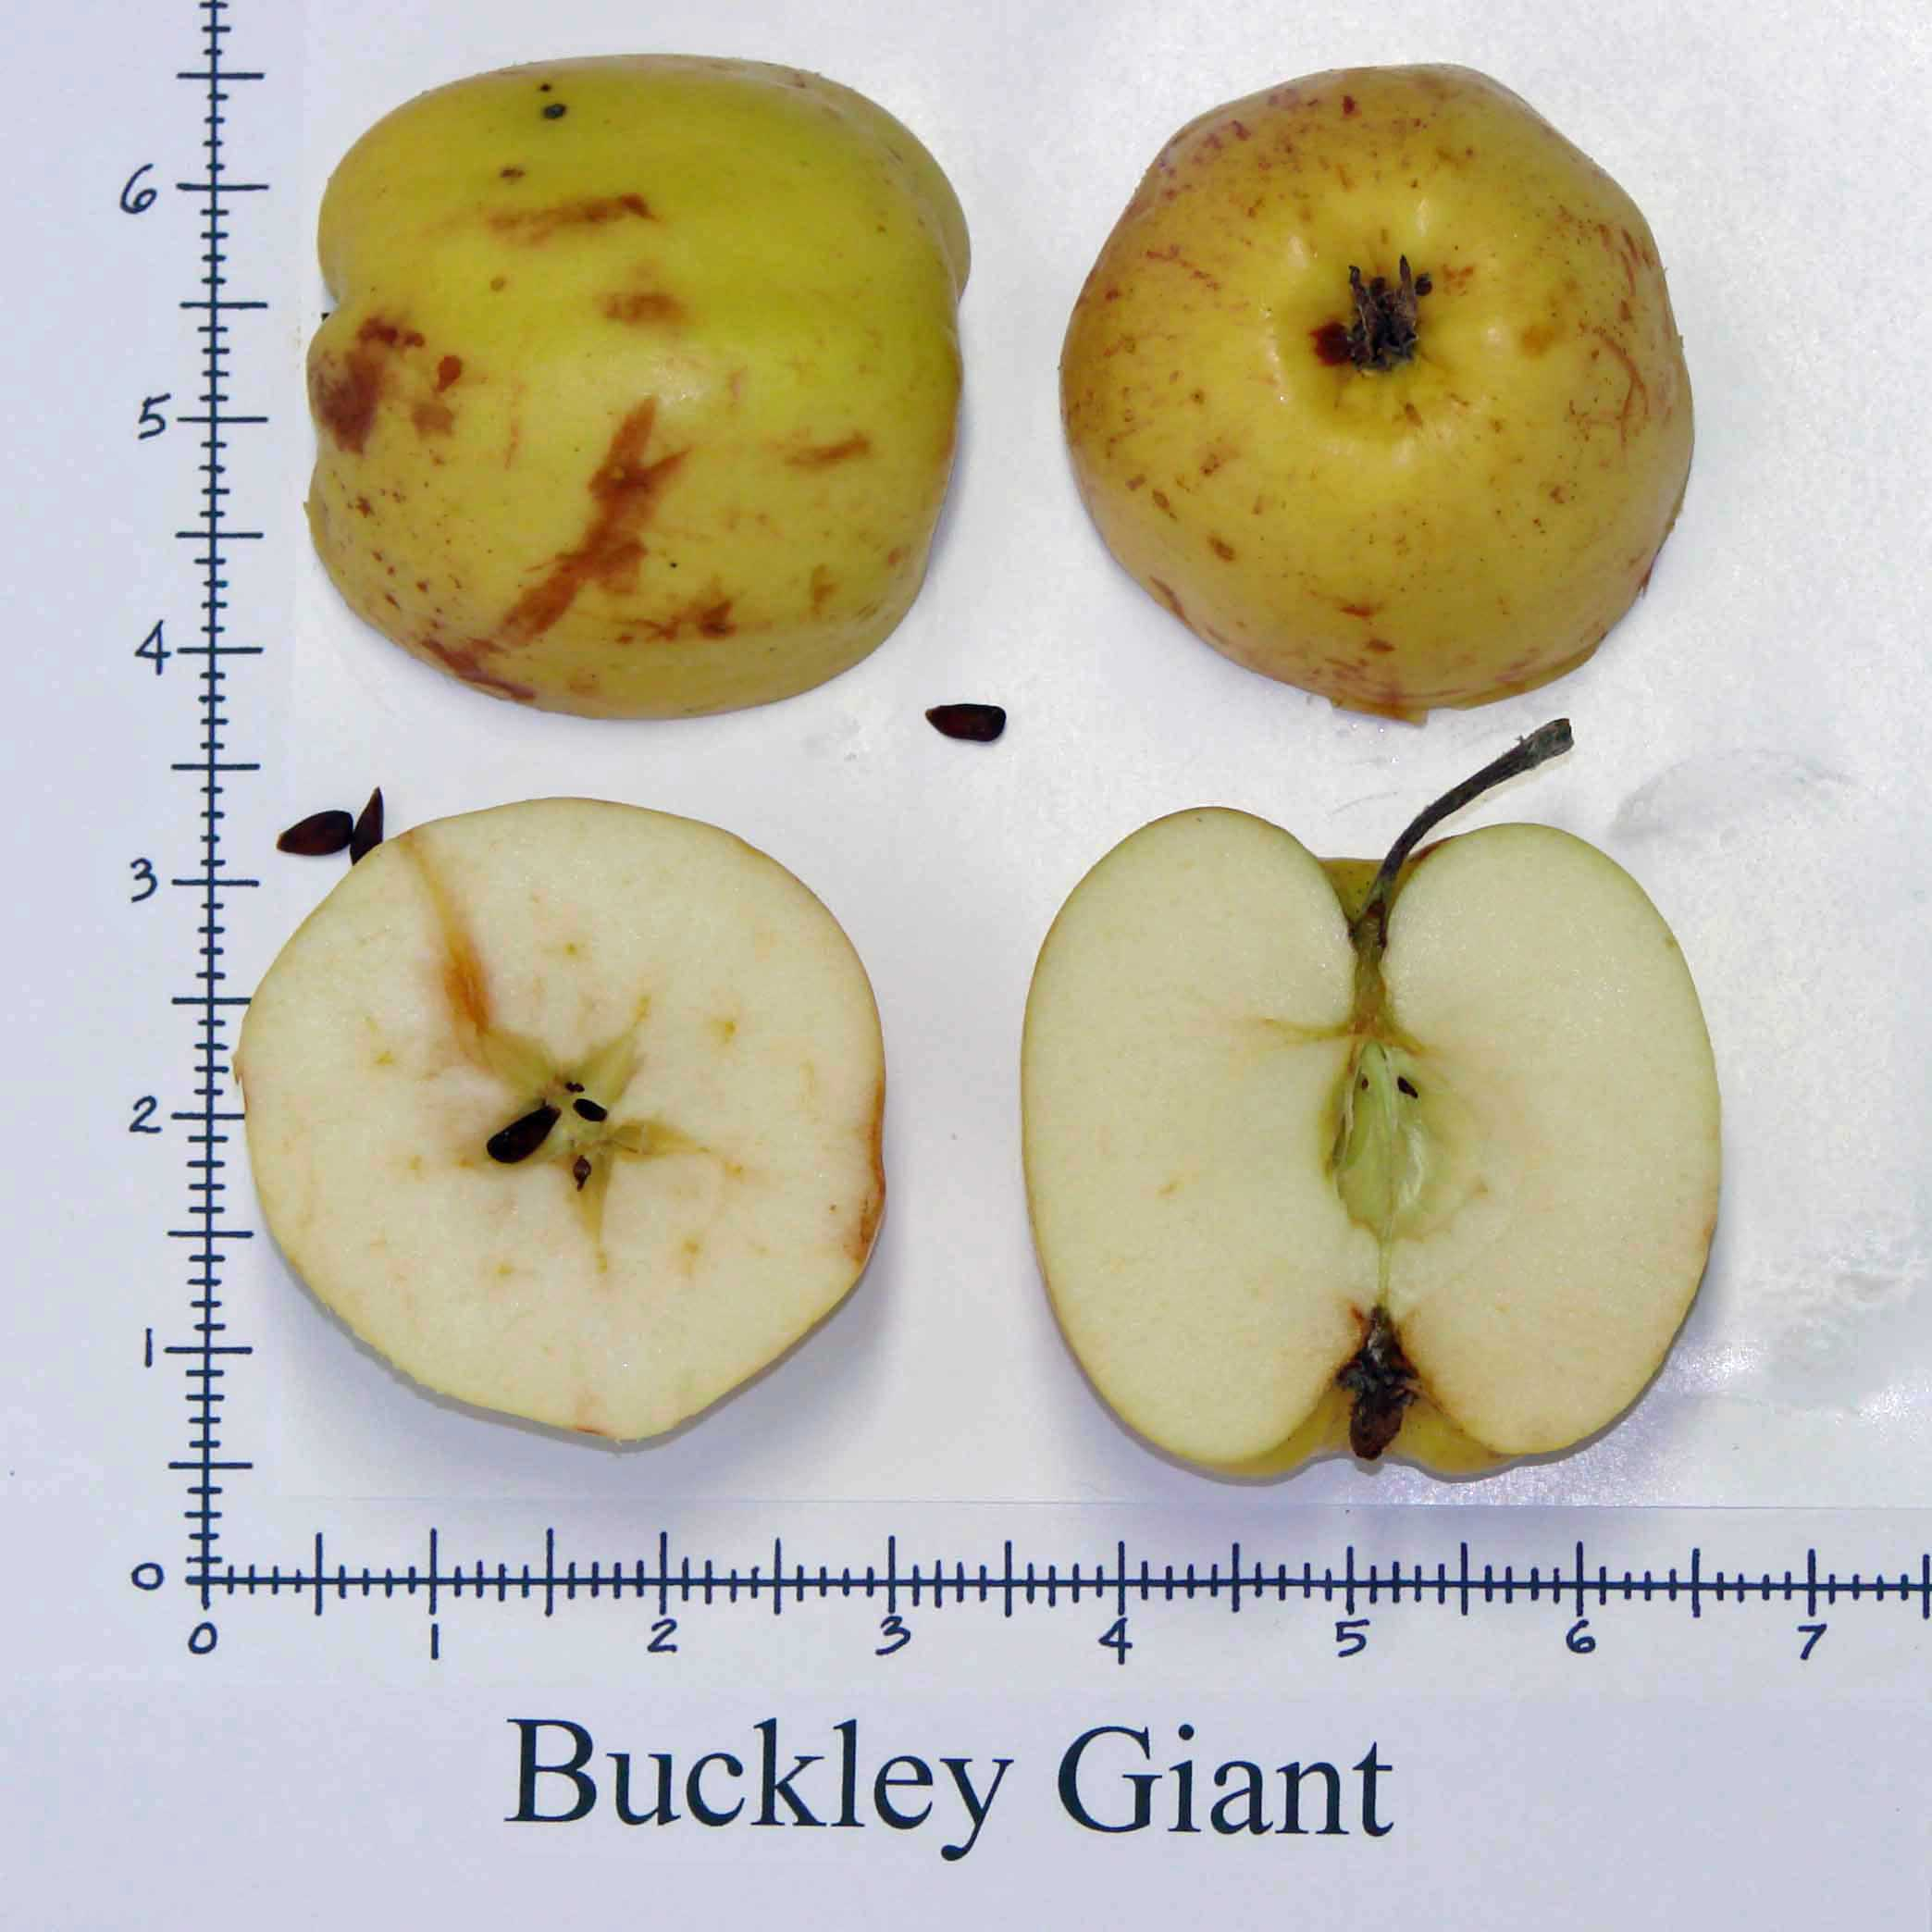 Buckley Giant 2